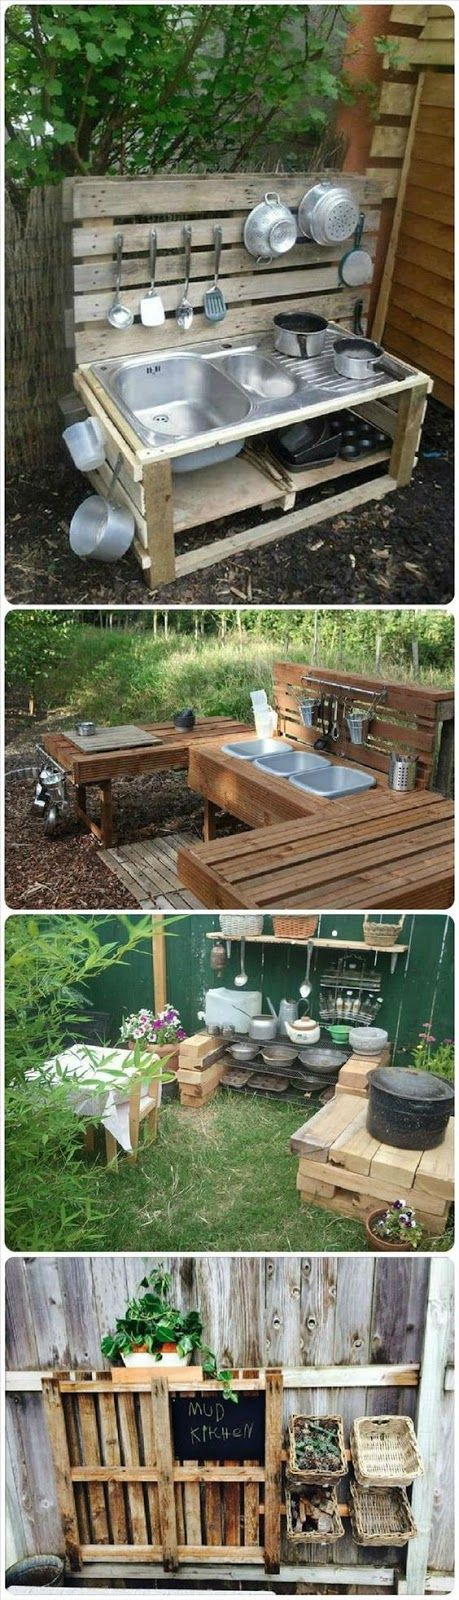 Outdoor Kitchens Made From Pallets                                                                                                                                                                                 More